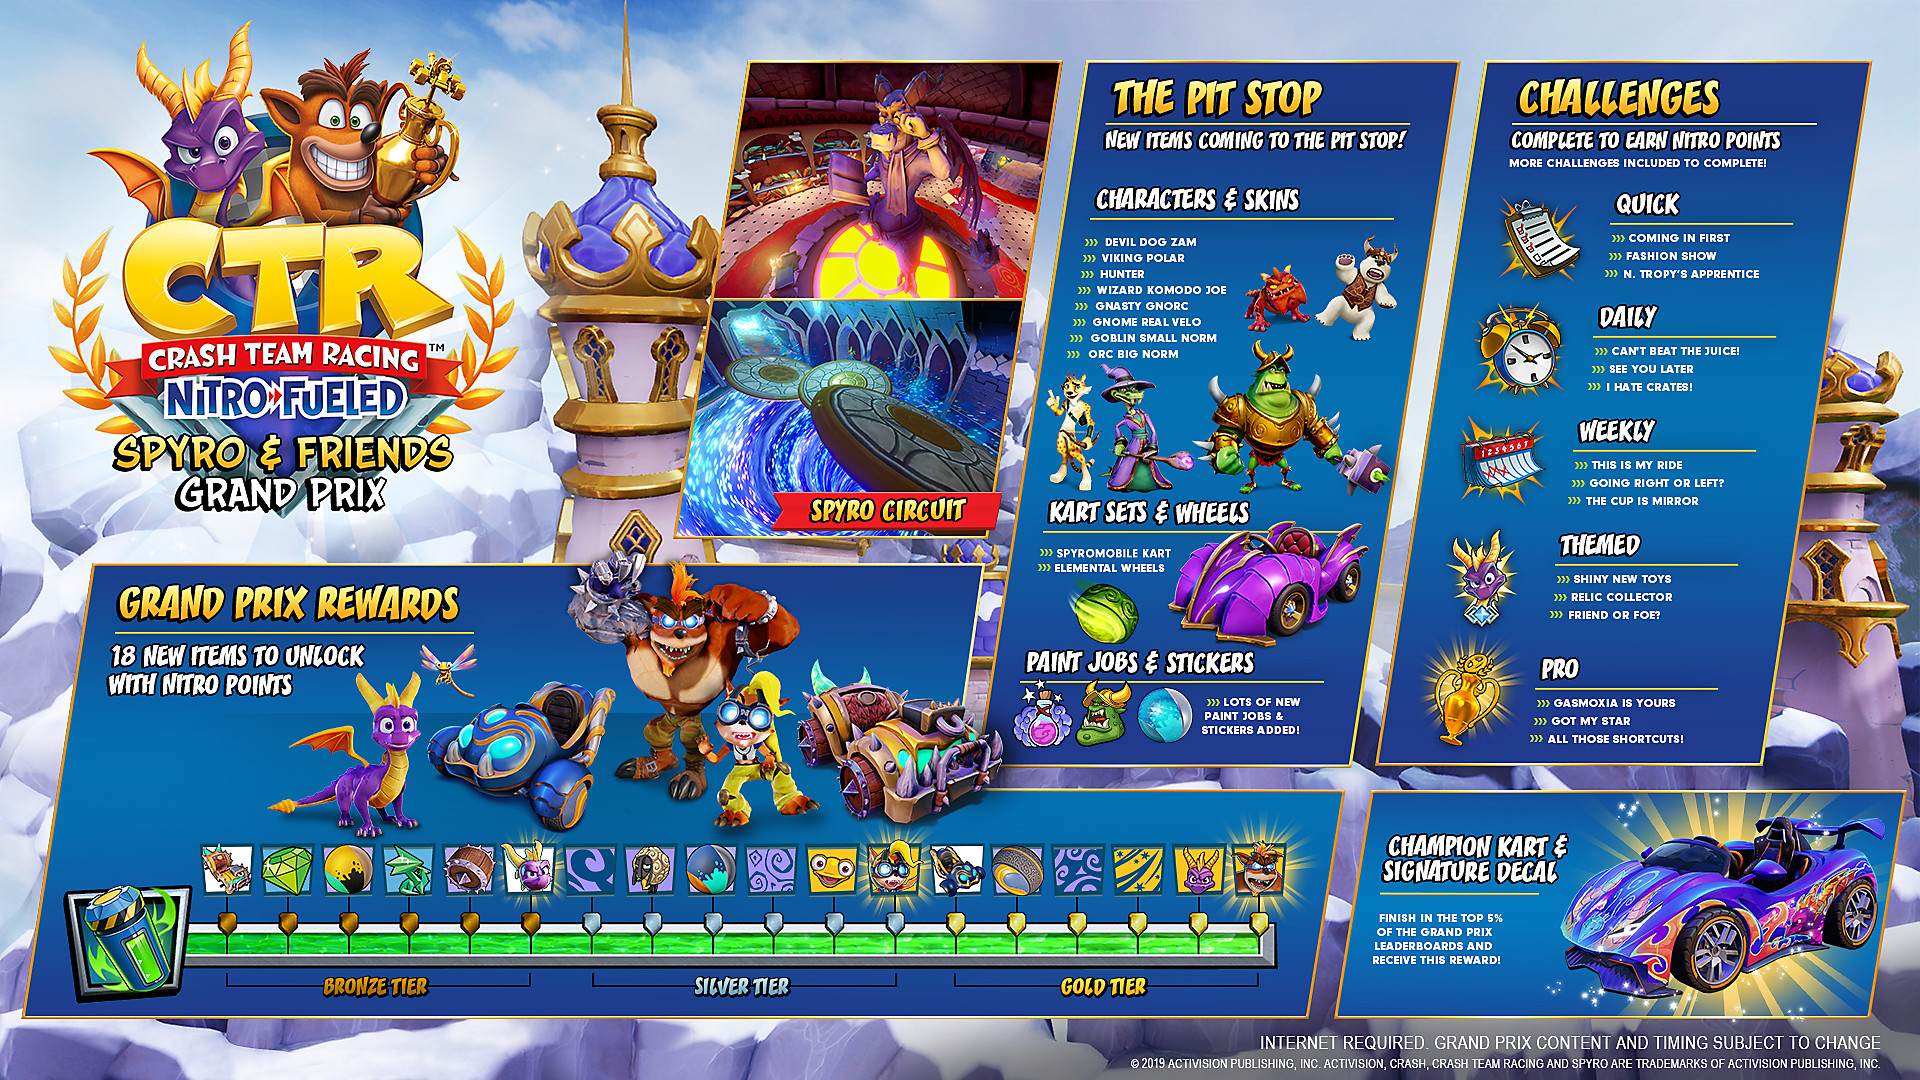 Spyro & Friends Grand Prix Full Roadmap